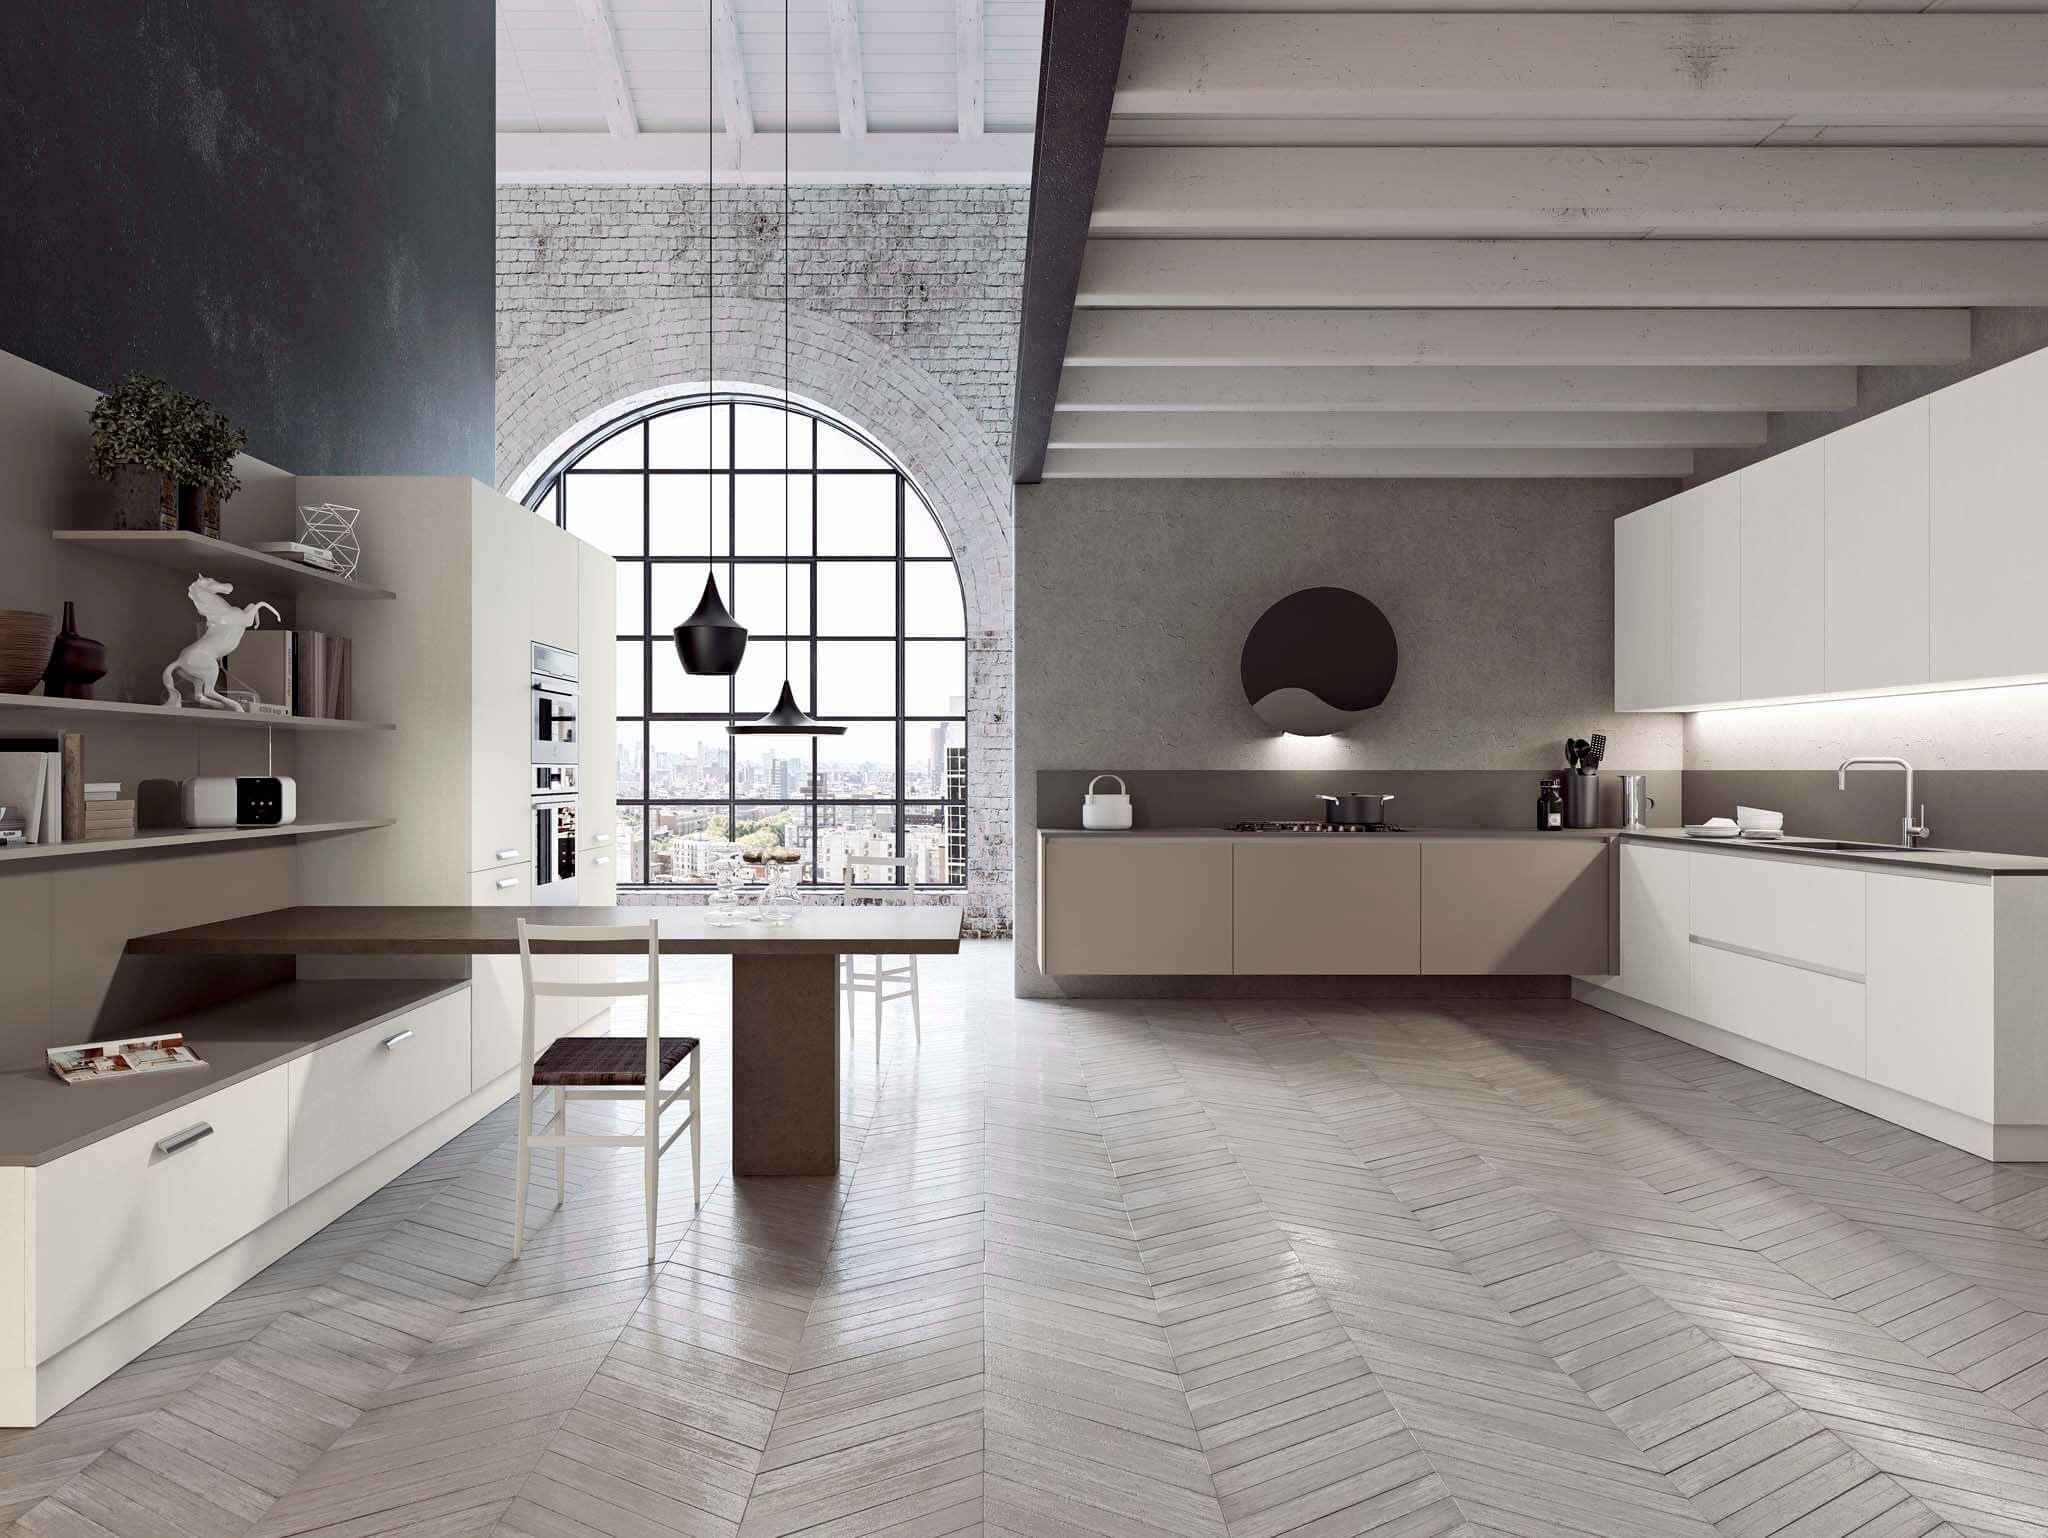 Kalea contemporary kitchen cabinet Matt lacquered